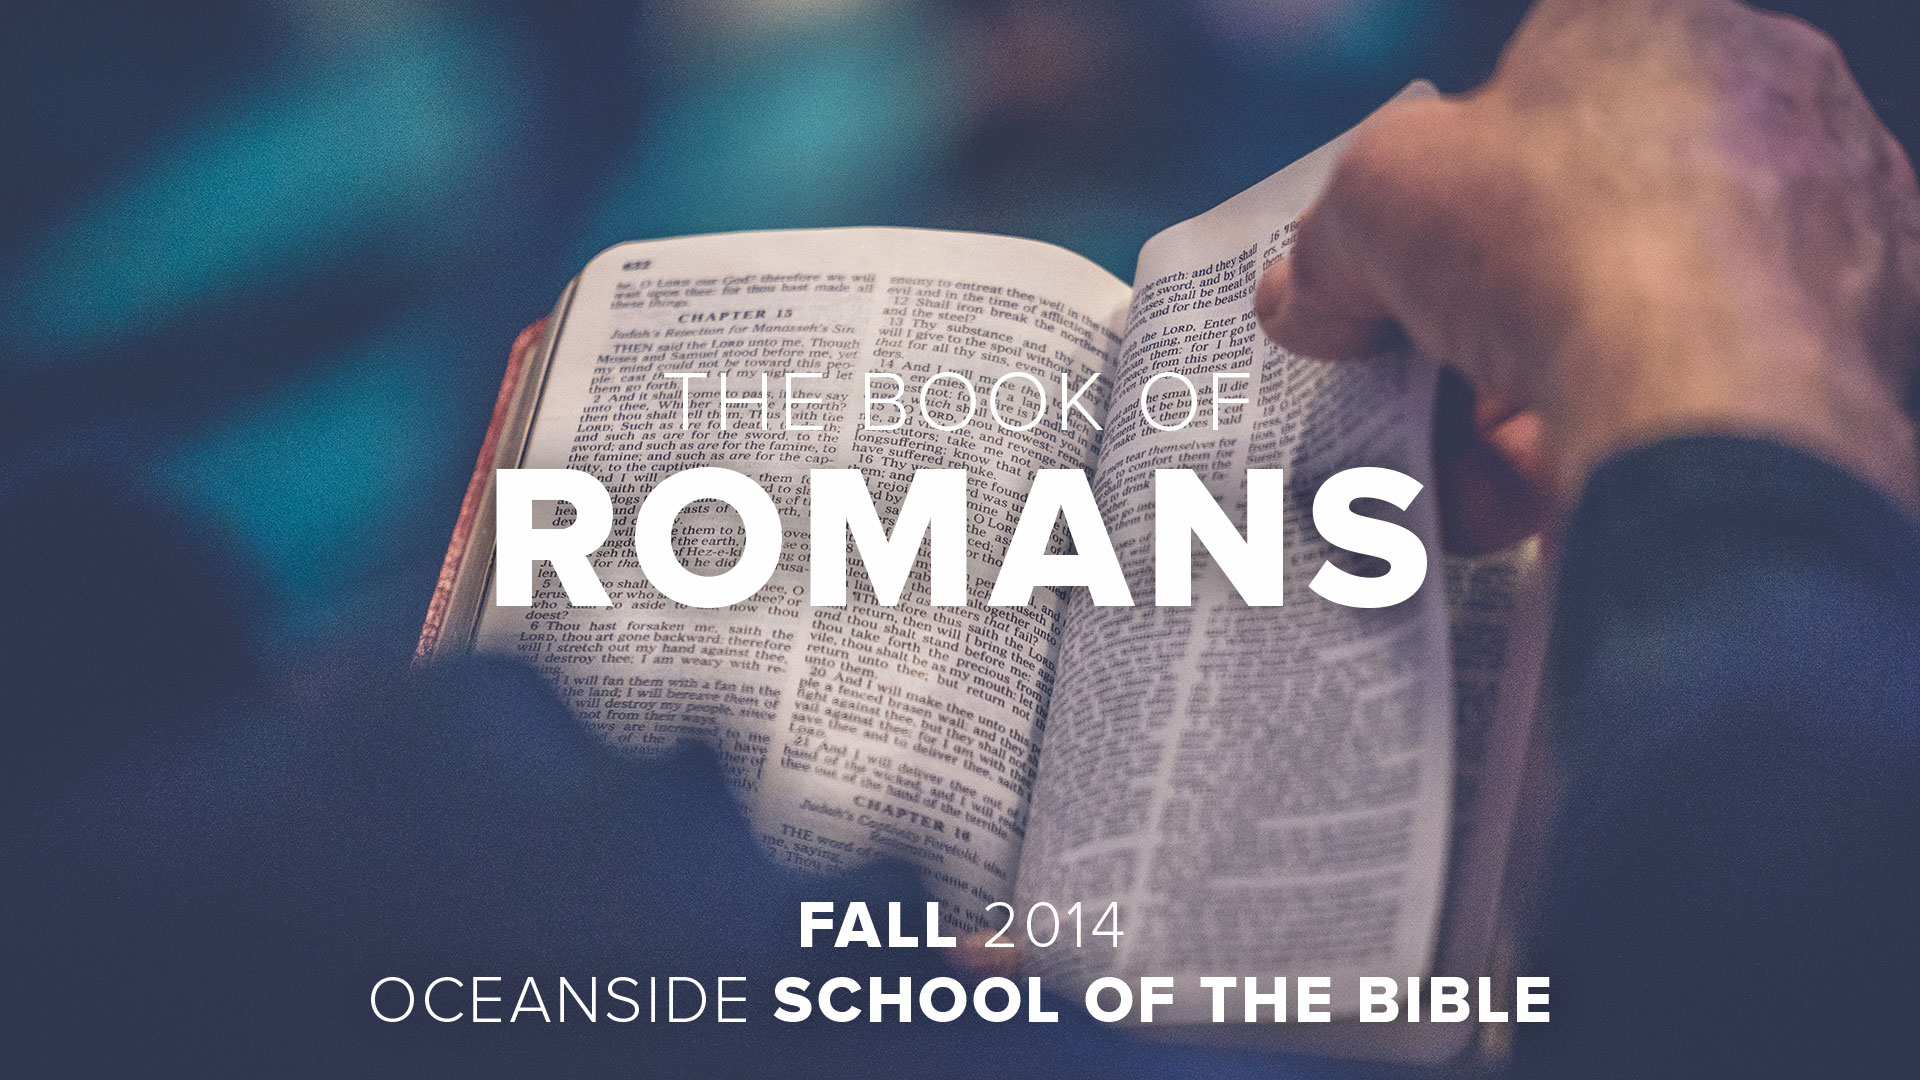 Session 5 - Romans